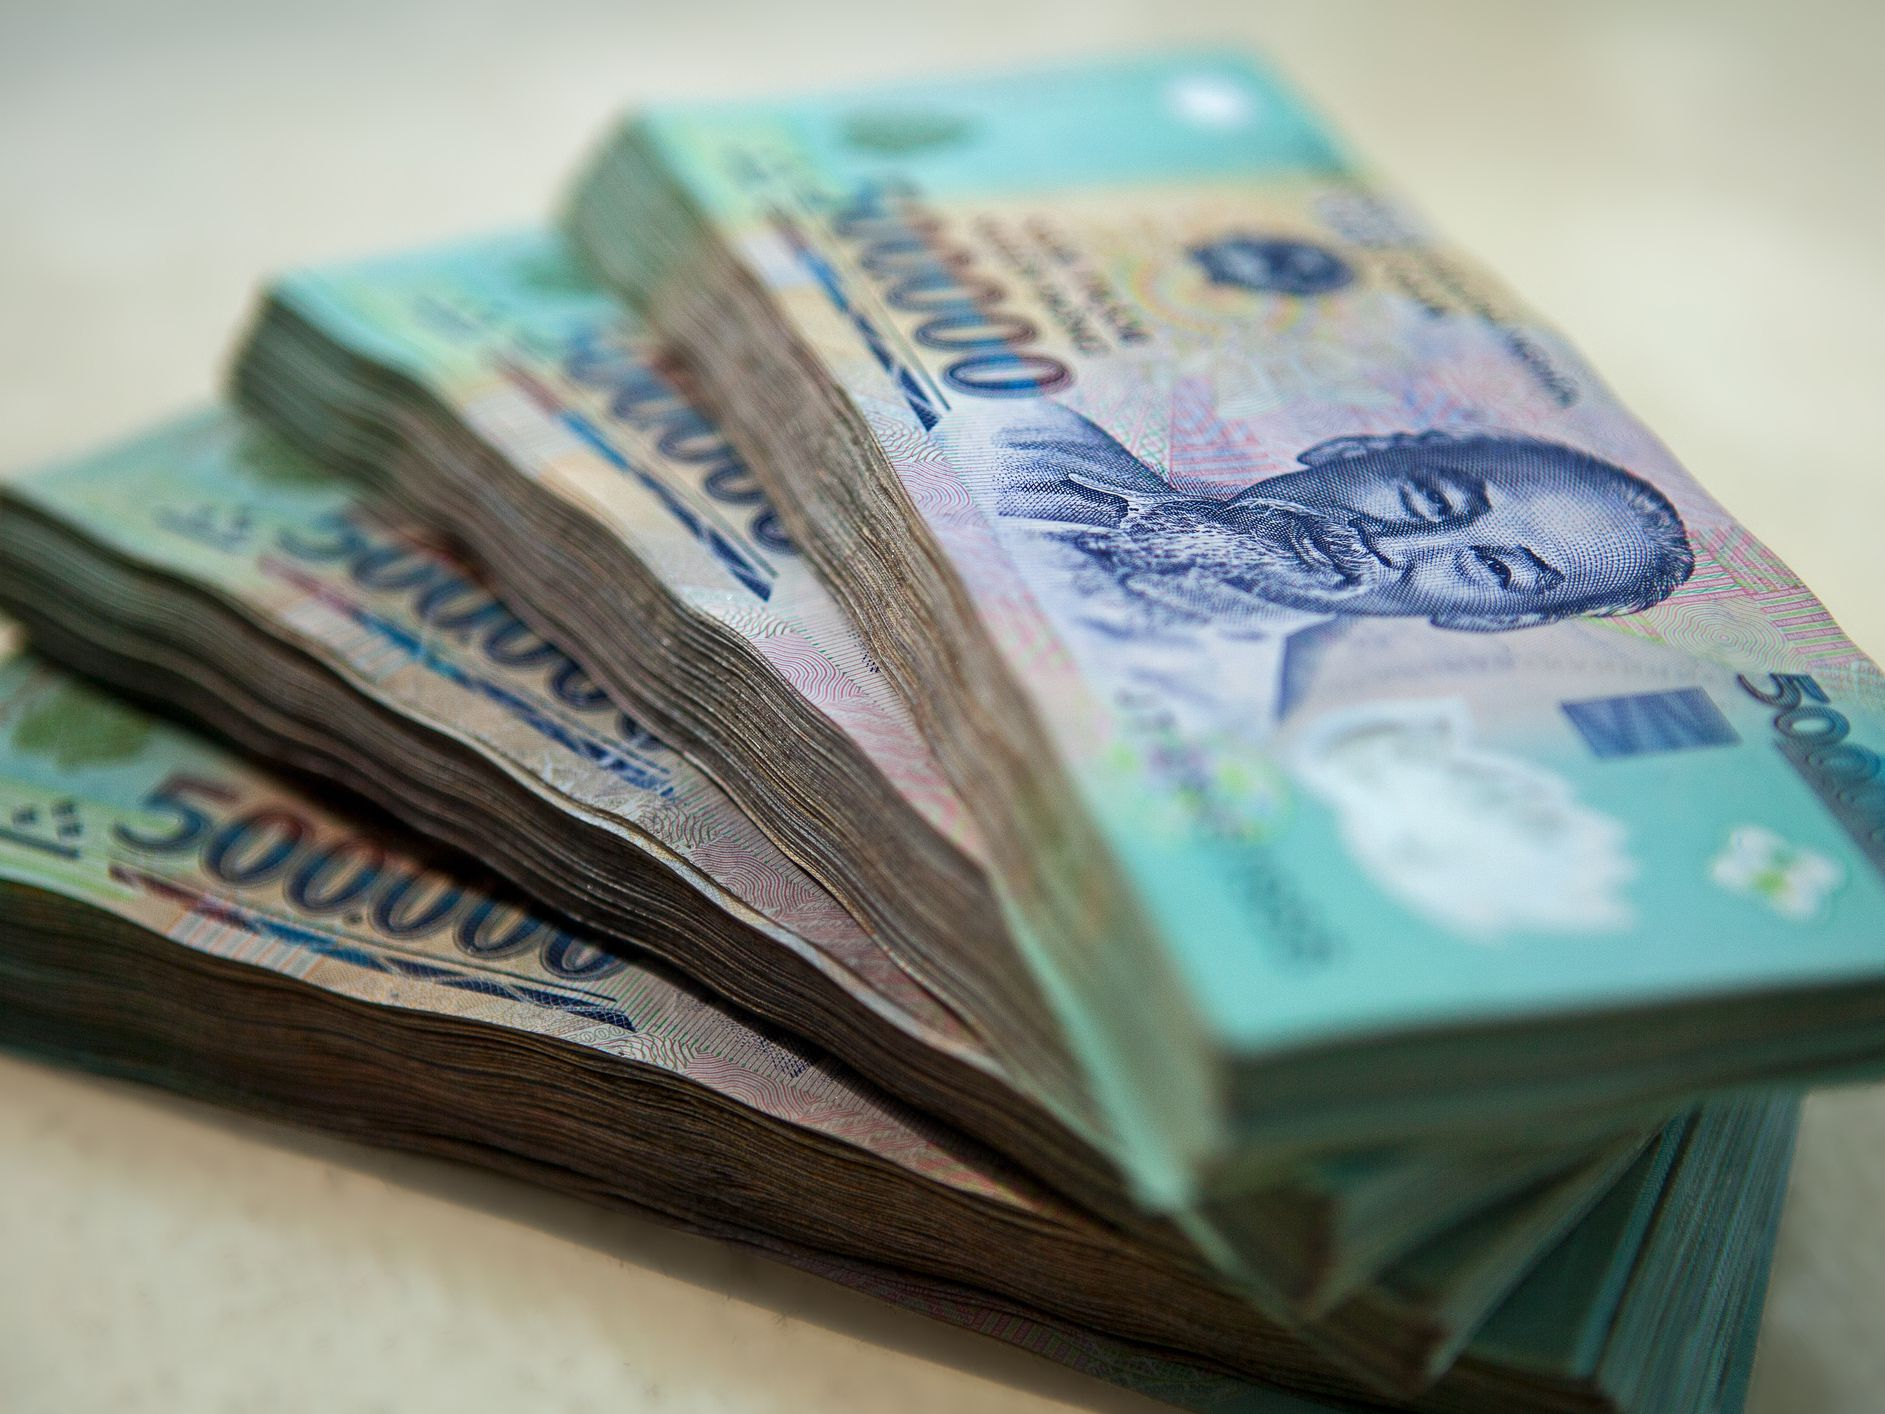 The World's Most Worthless Currencies